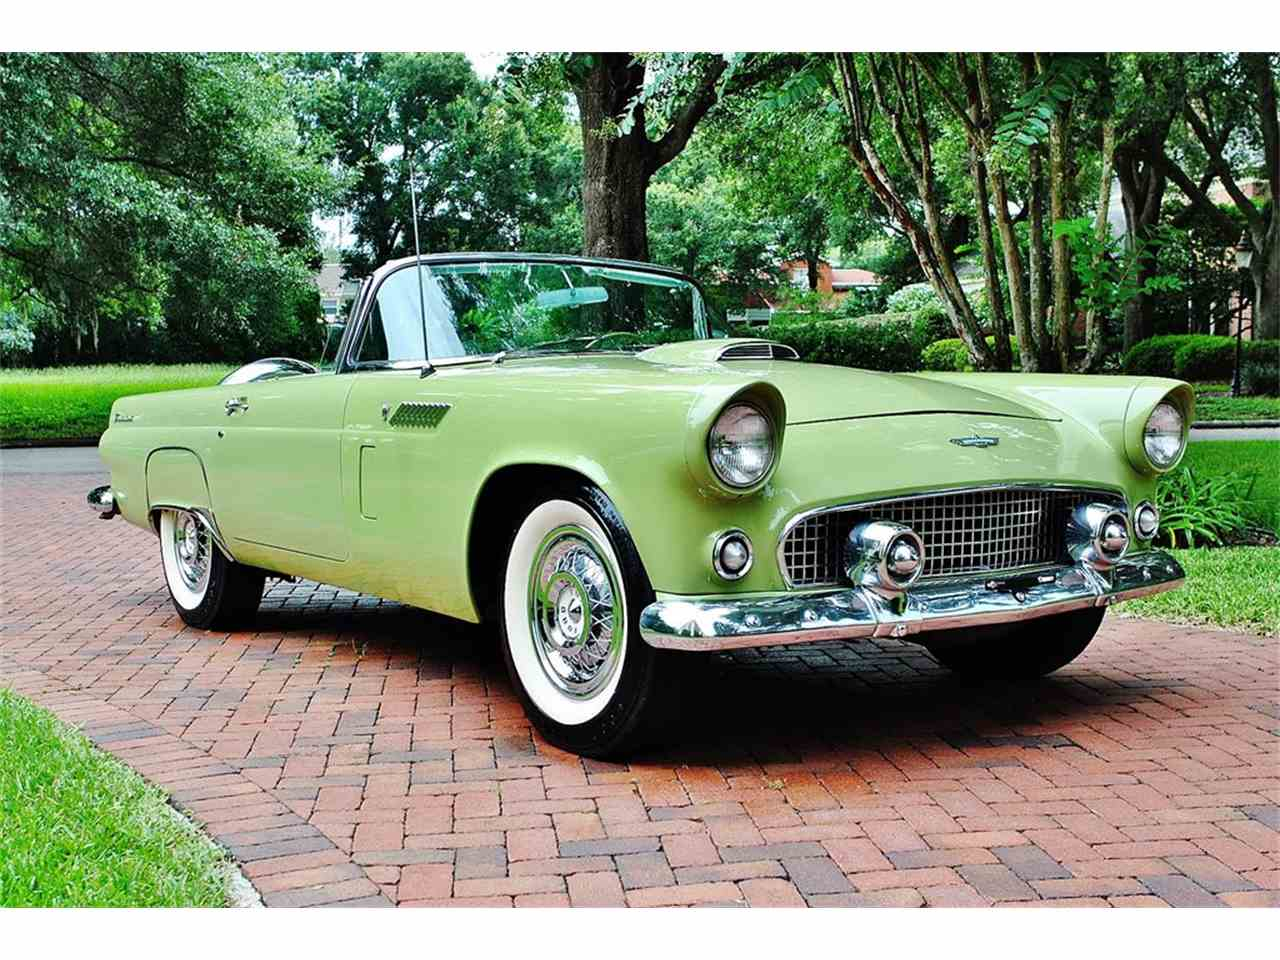 Town And Country Auction >> 1956 Ford Thunderbird for Sale | ClassicCars.com | CC-1007584